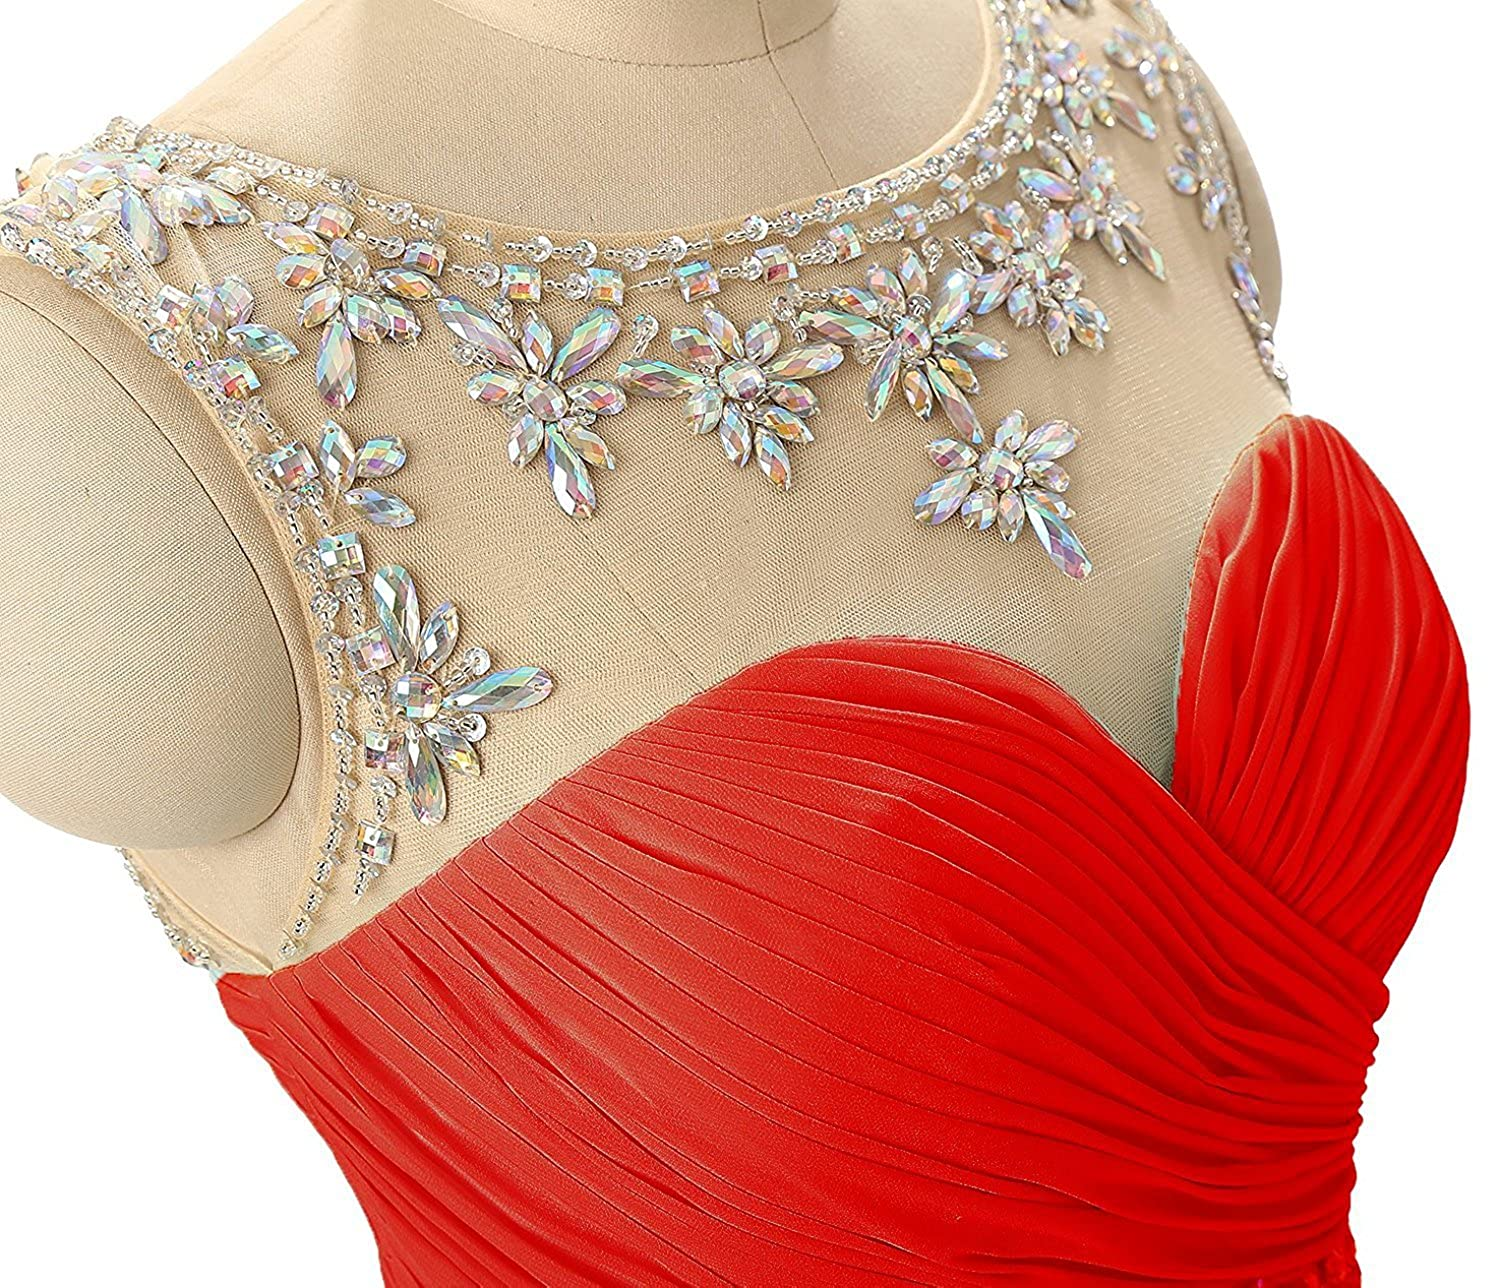 a981bdb5d142 Women's Beaded Short Homecoming Dresses for Juniors Chiffon Prom Dresses  2018 at Amazon Women's Clothing store: